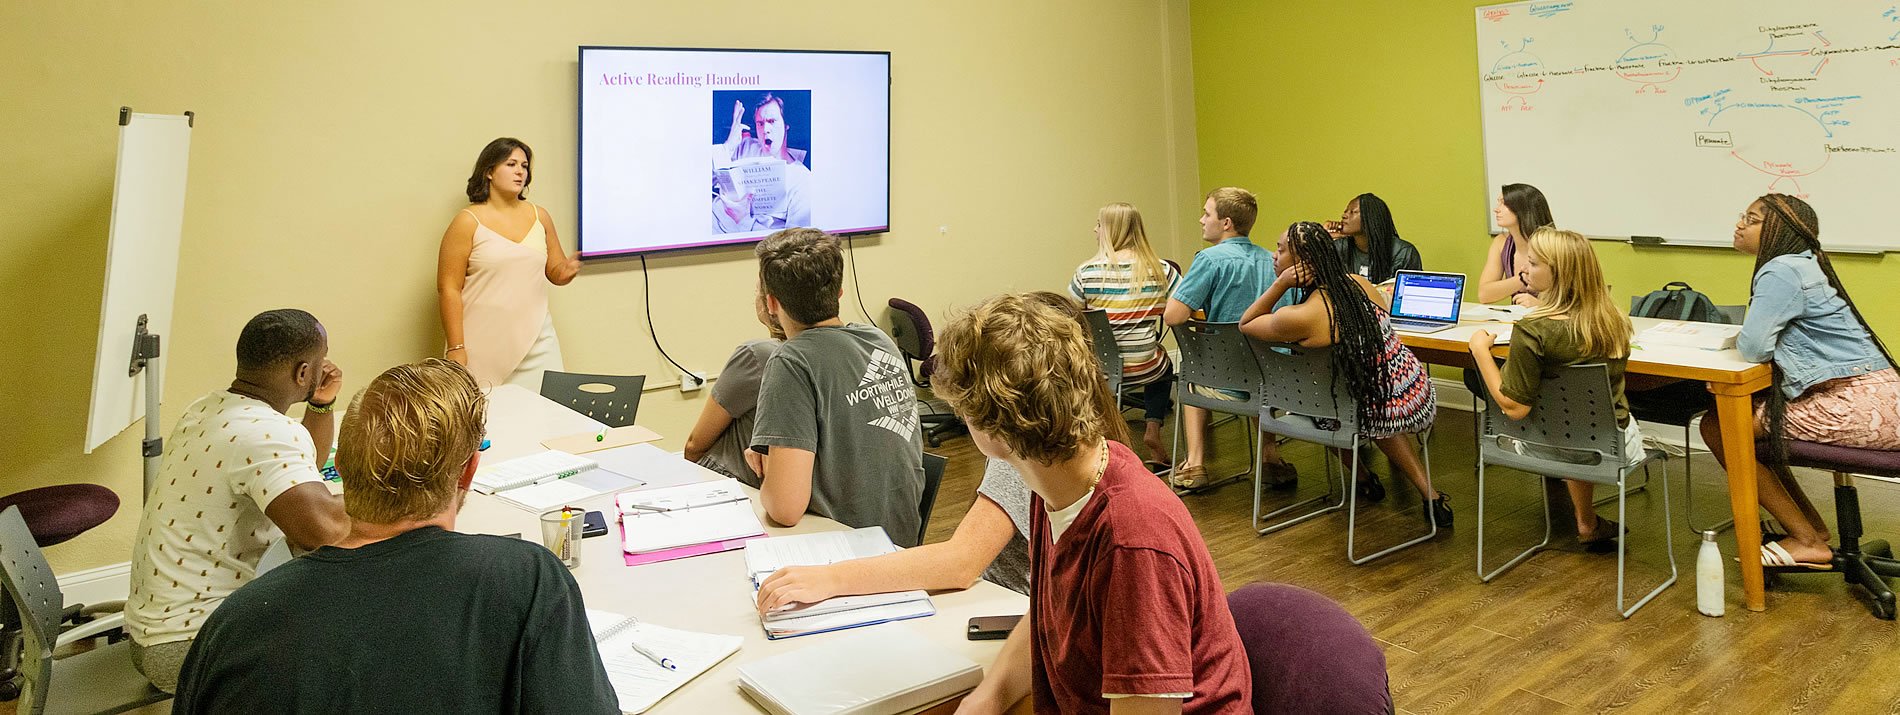 Study Smarter Not Harder Presentations at Berry College